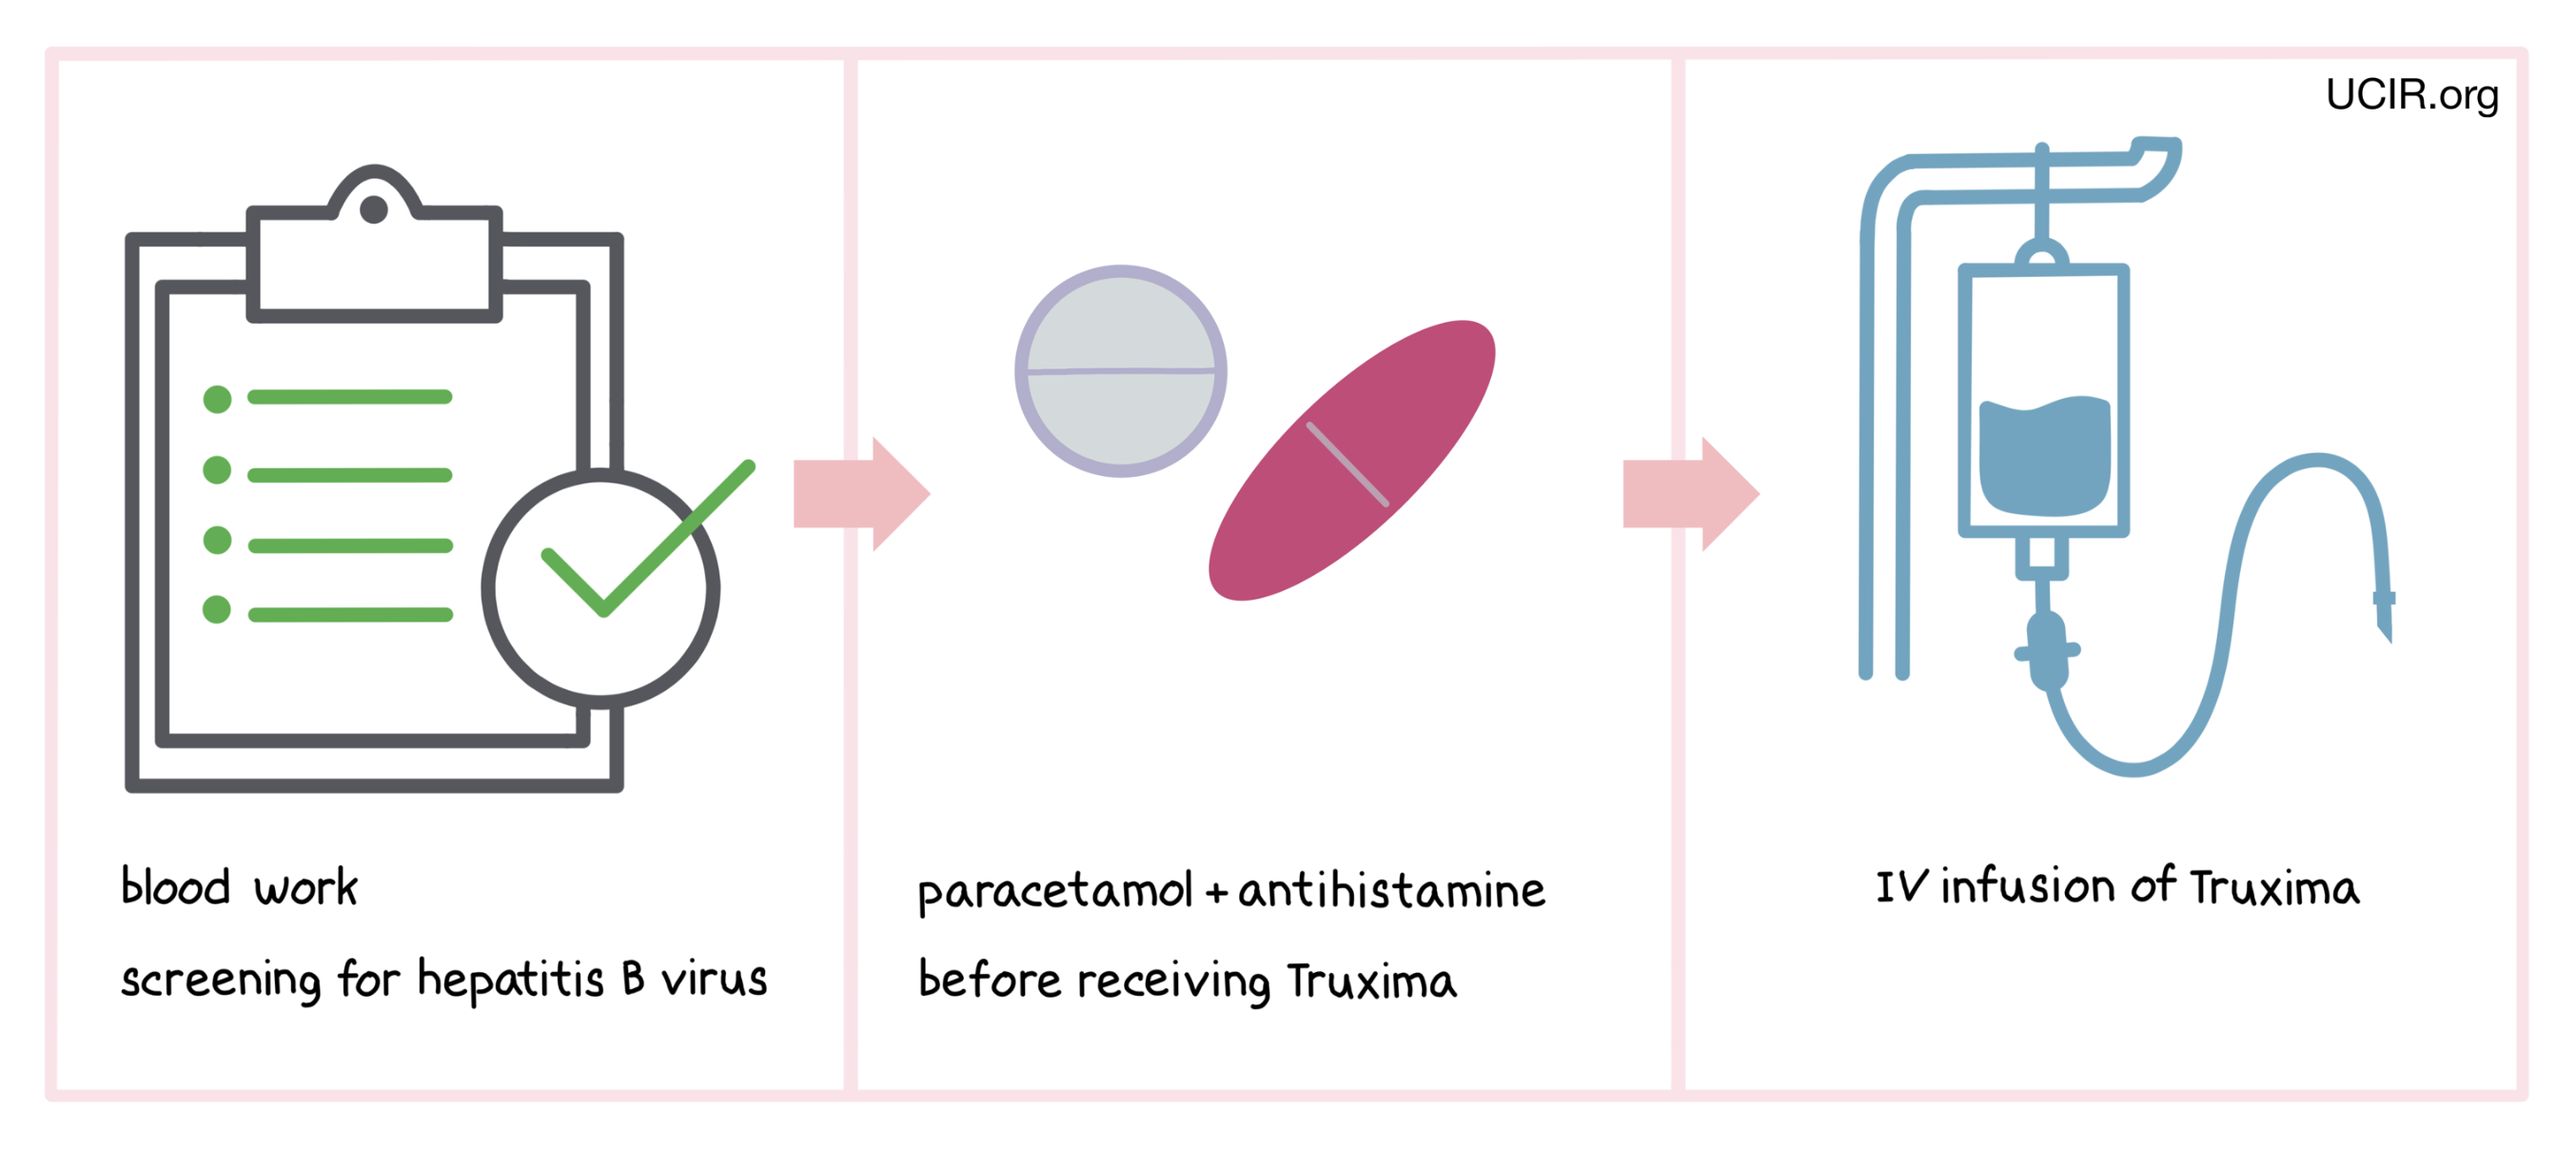 How is Truxima administered?